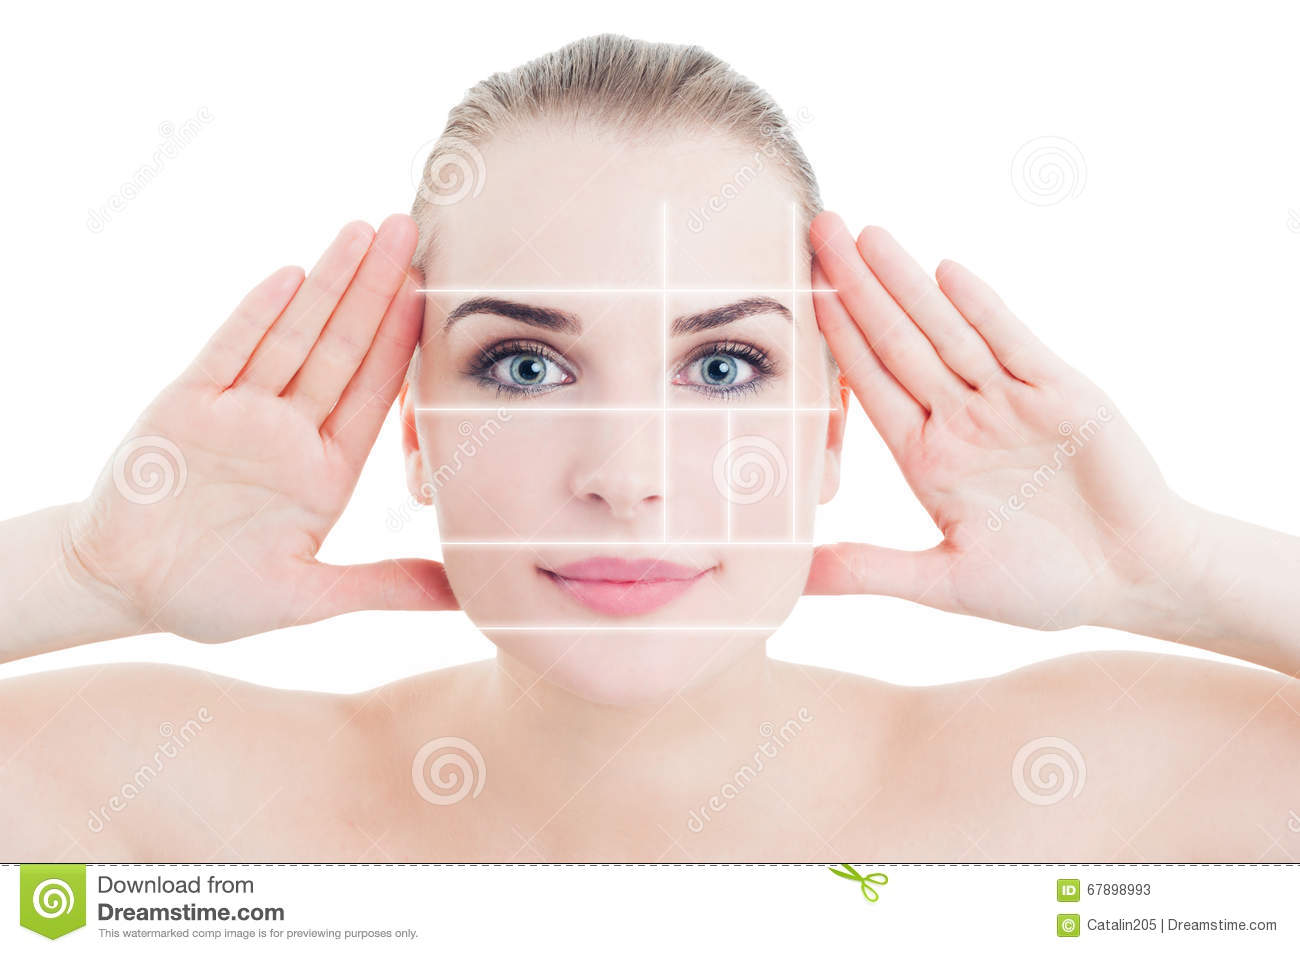 Portrait of woman with perfect skin divided by marks